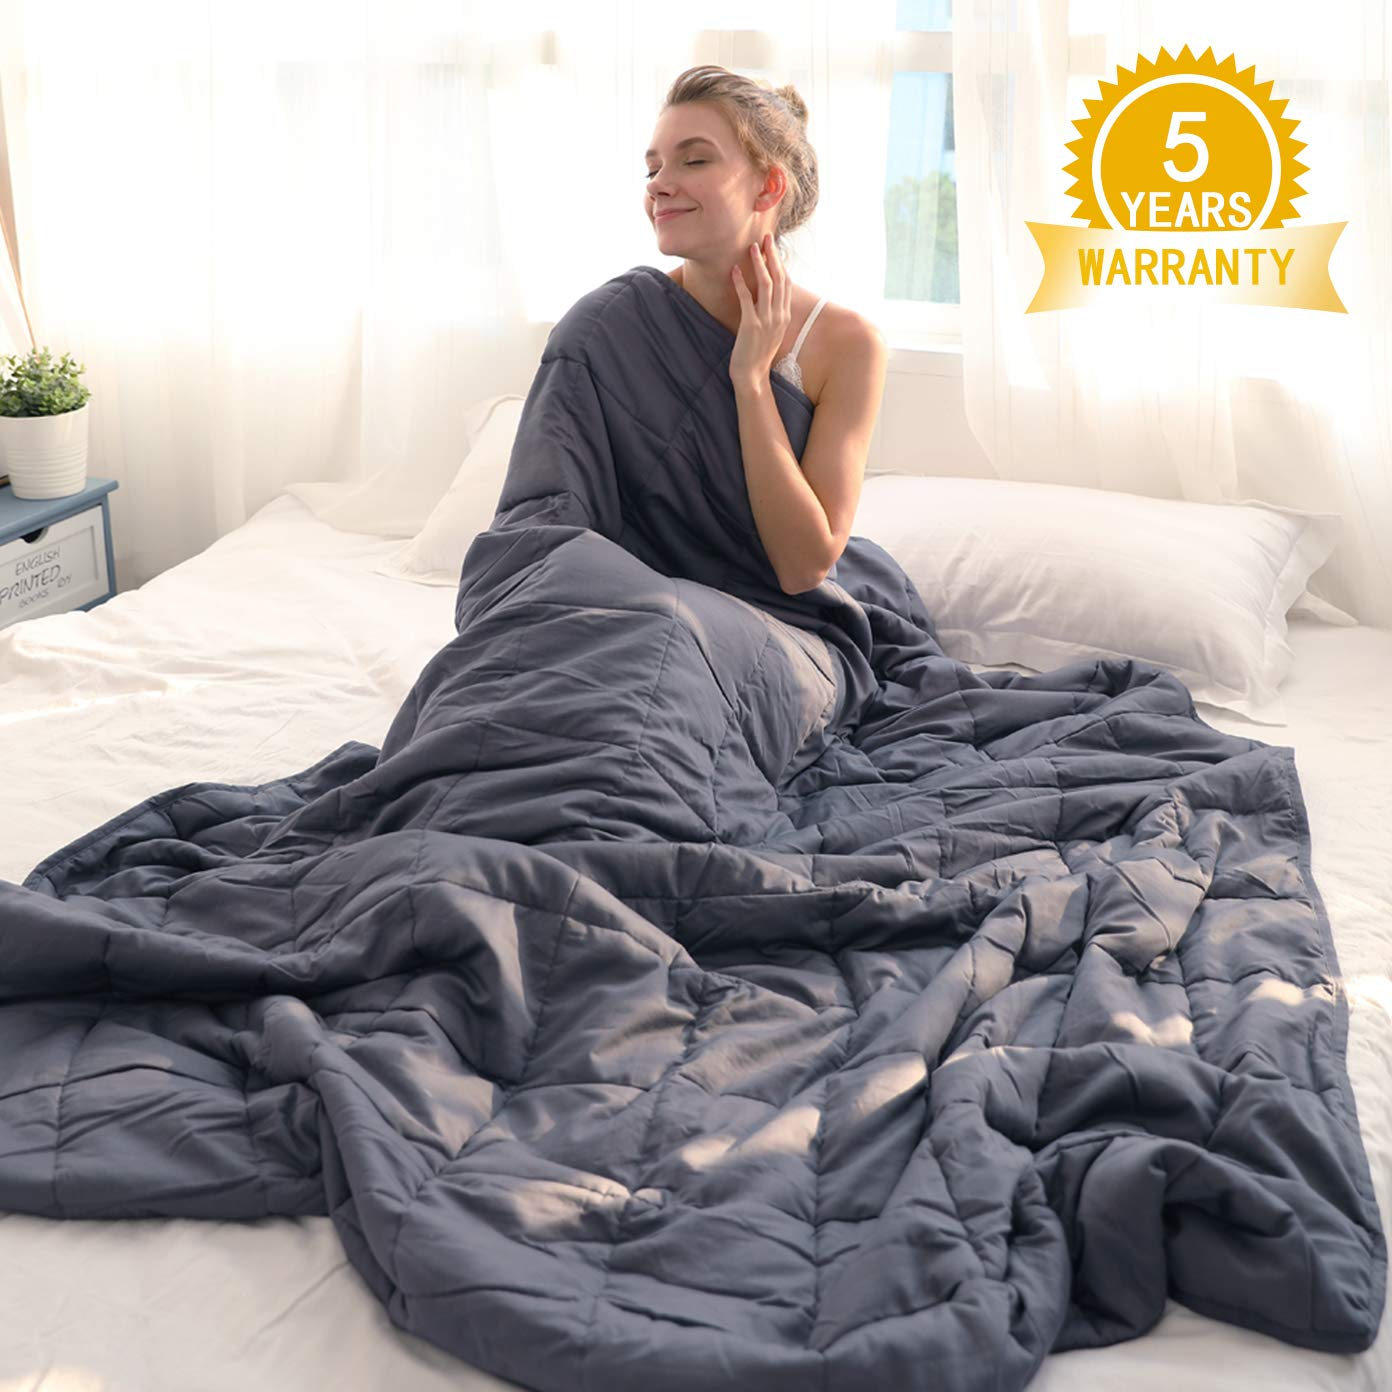 Isilila Glass Weighted Blanket 60'' x 80'' 15 lbs/ 20 lbs - Queen Size Cotton Provide Comfortable Sleep Quality for Kids & Adults (Gray, 60''x80'', 20 lbs) by Isilila